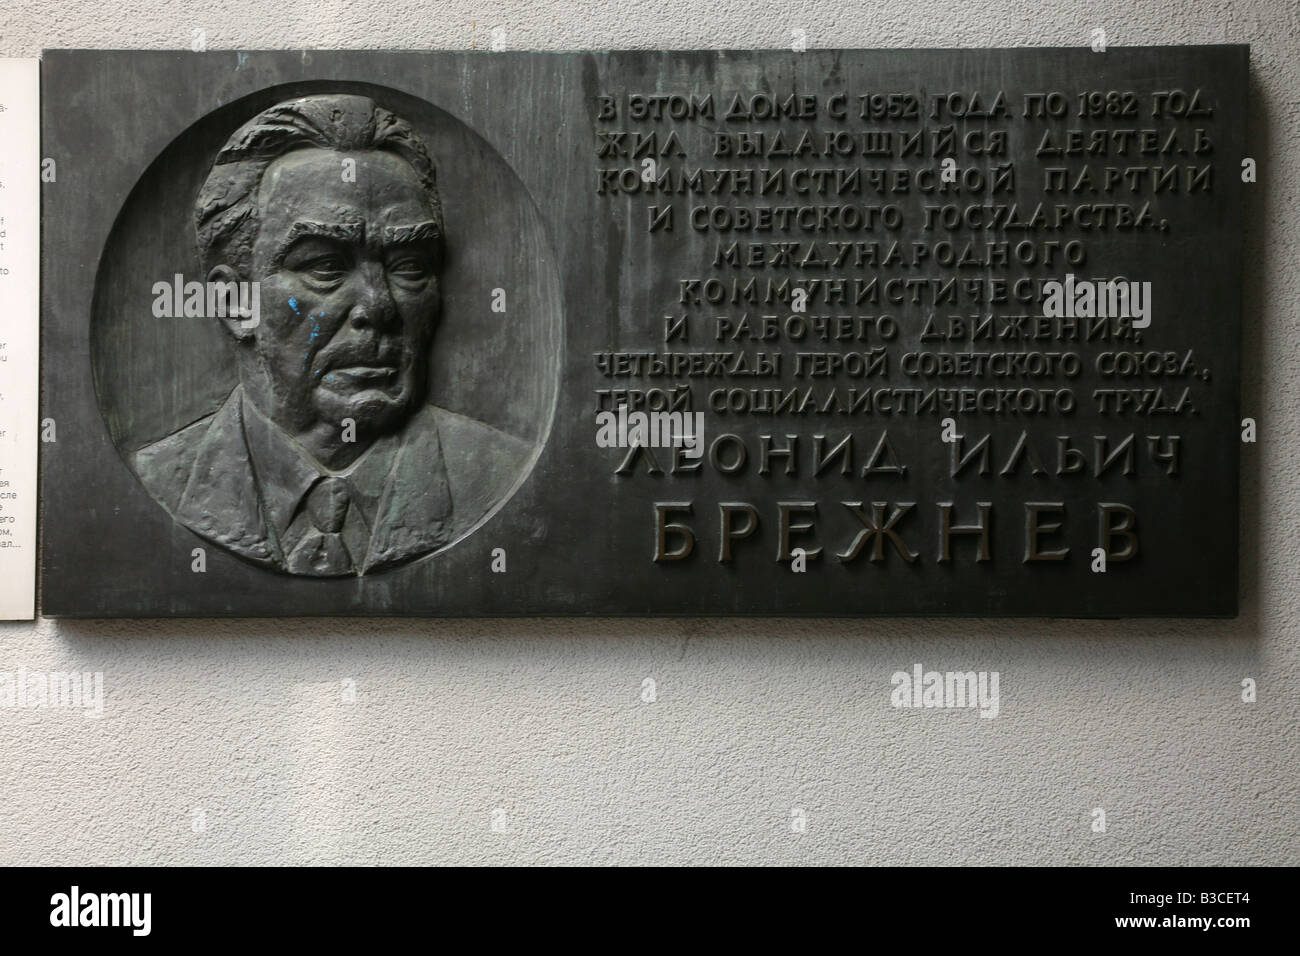 Commemorative plaque from the house of Leonid Brezhnev in Moscow in the Berlin Wall Museum in Berlin, Germany - Stock Image